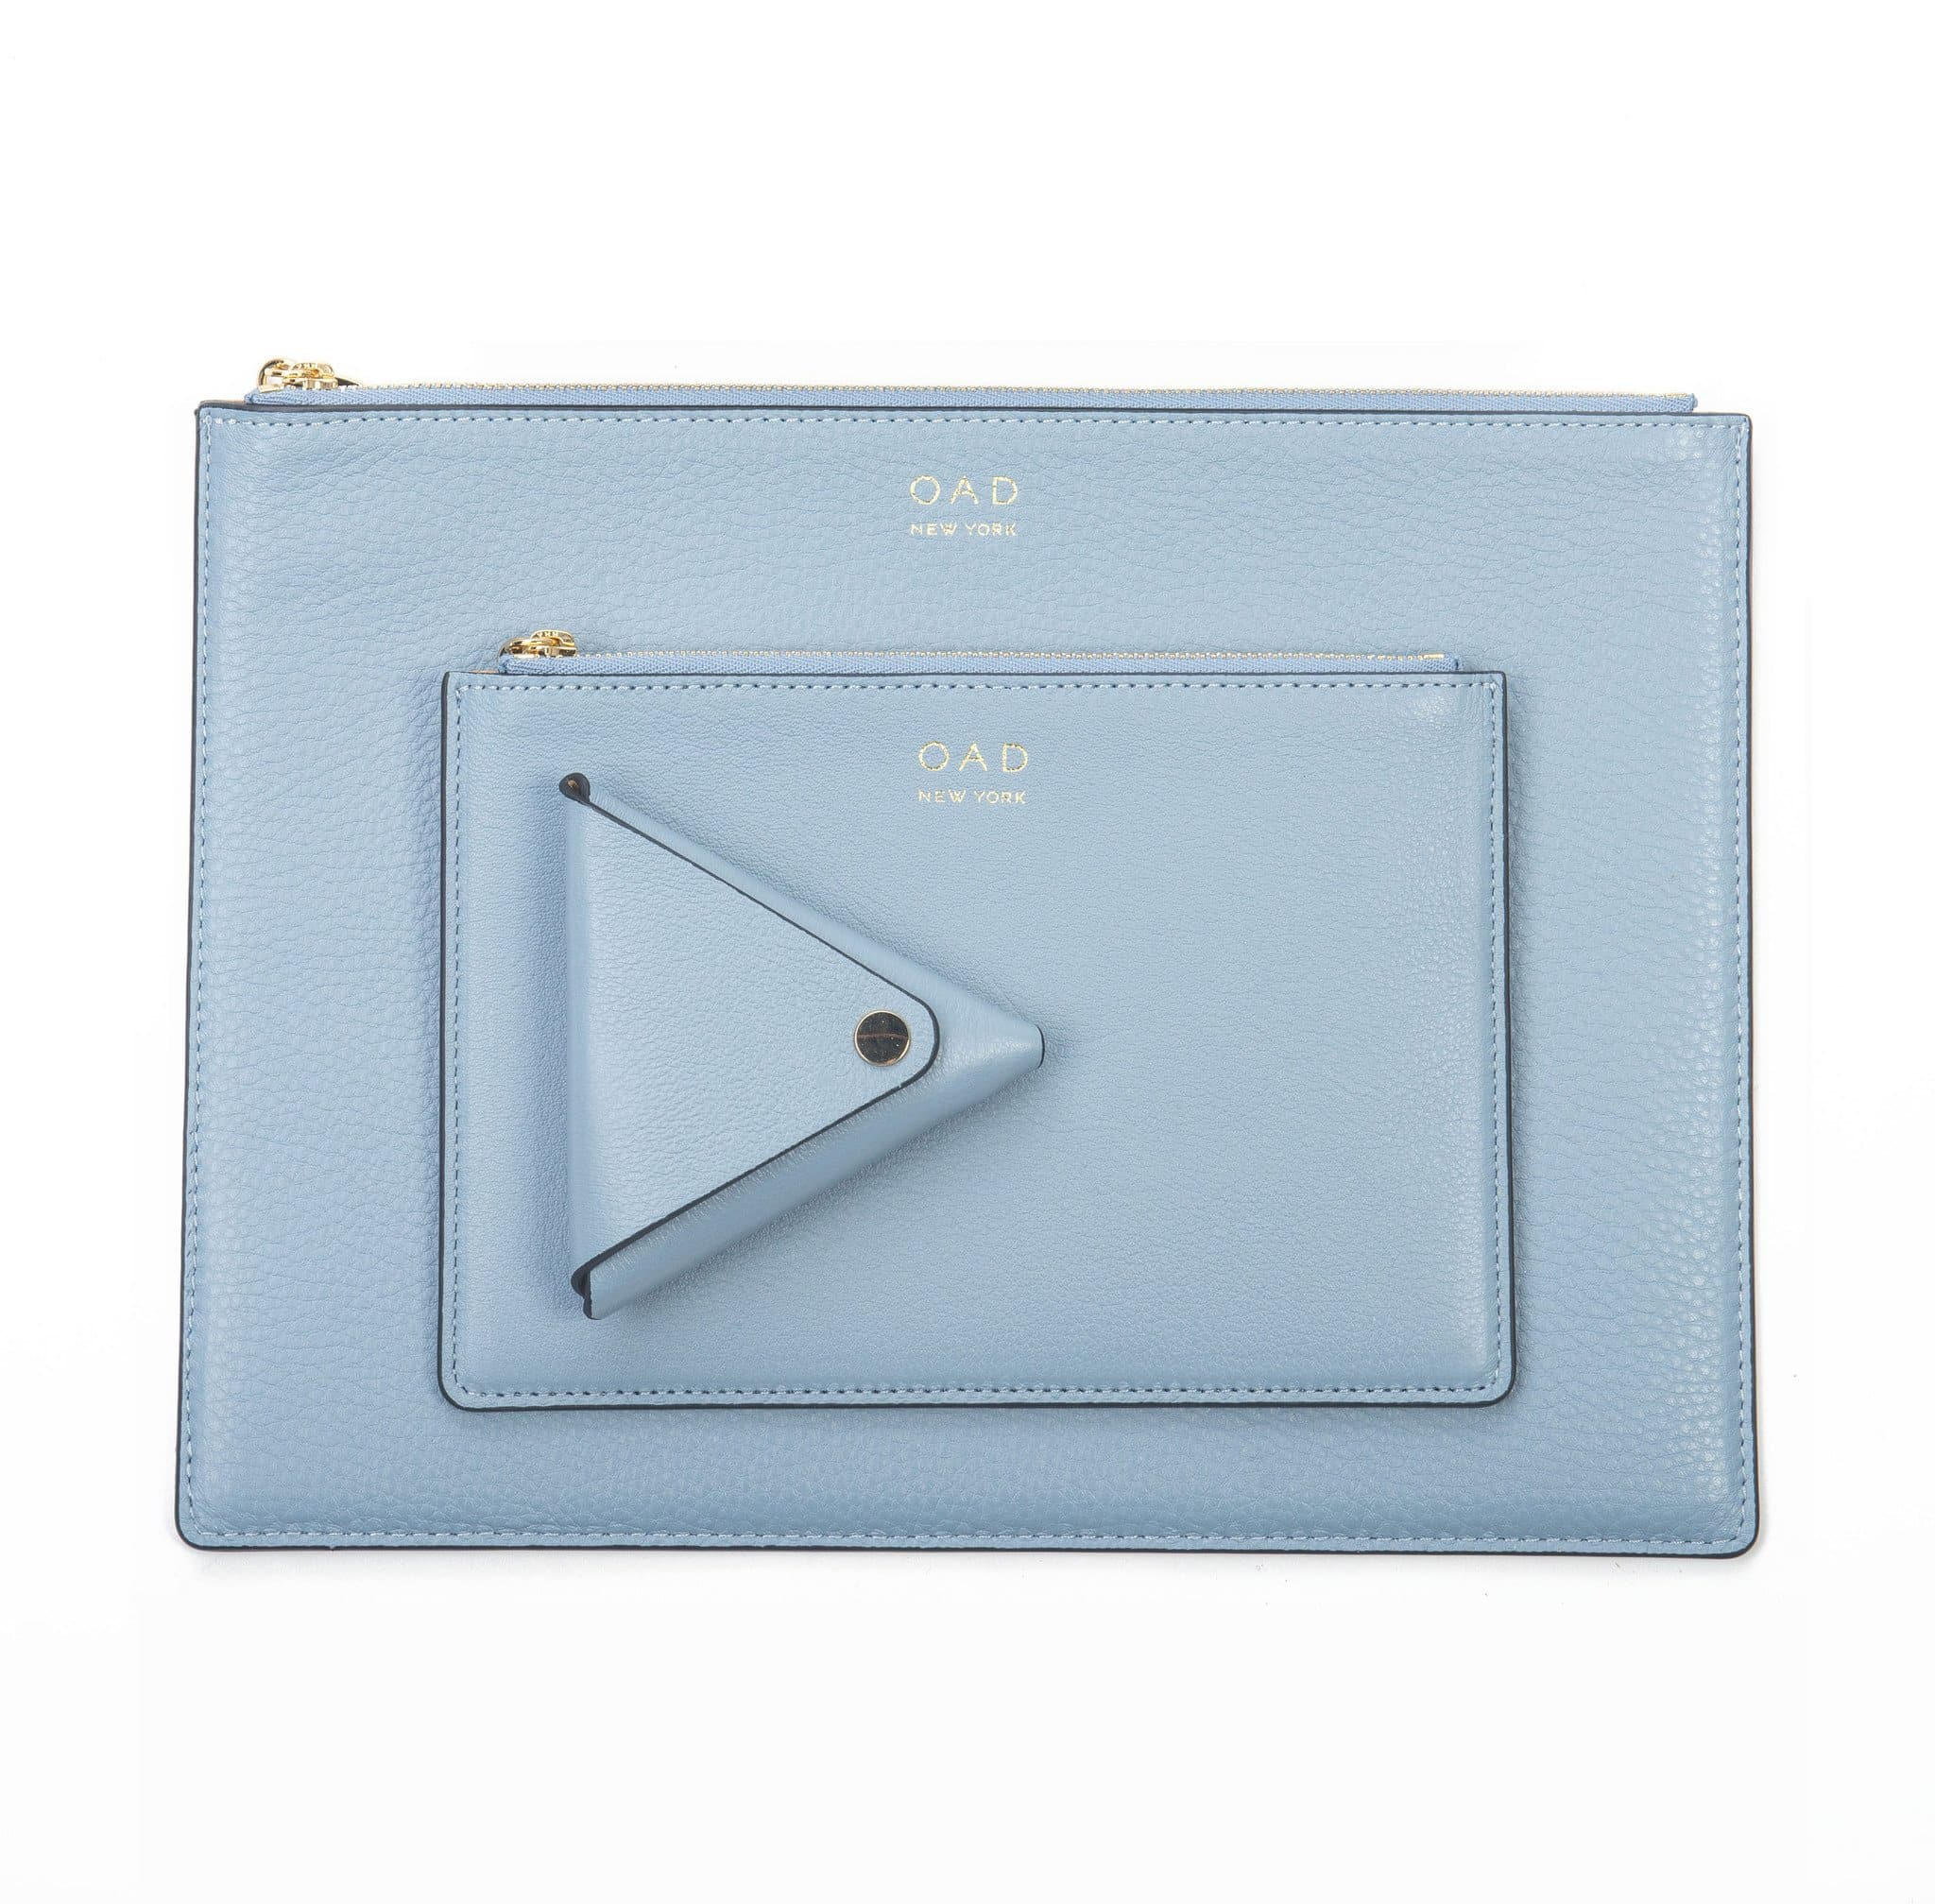 Triangle Key Ring - Powder Blue - OAD NEW YORK - 3